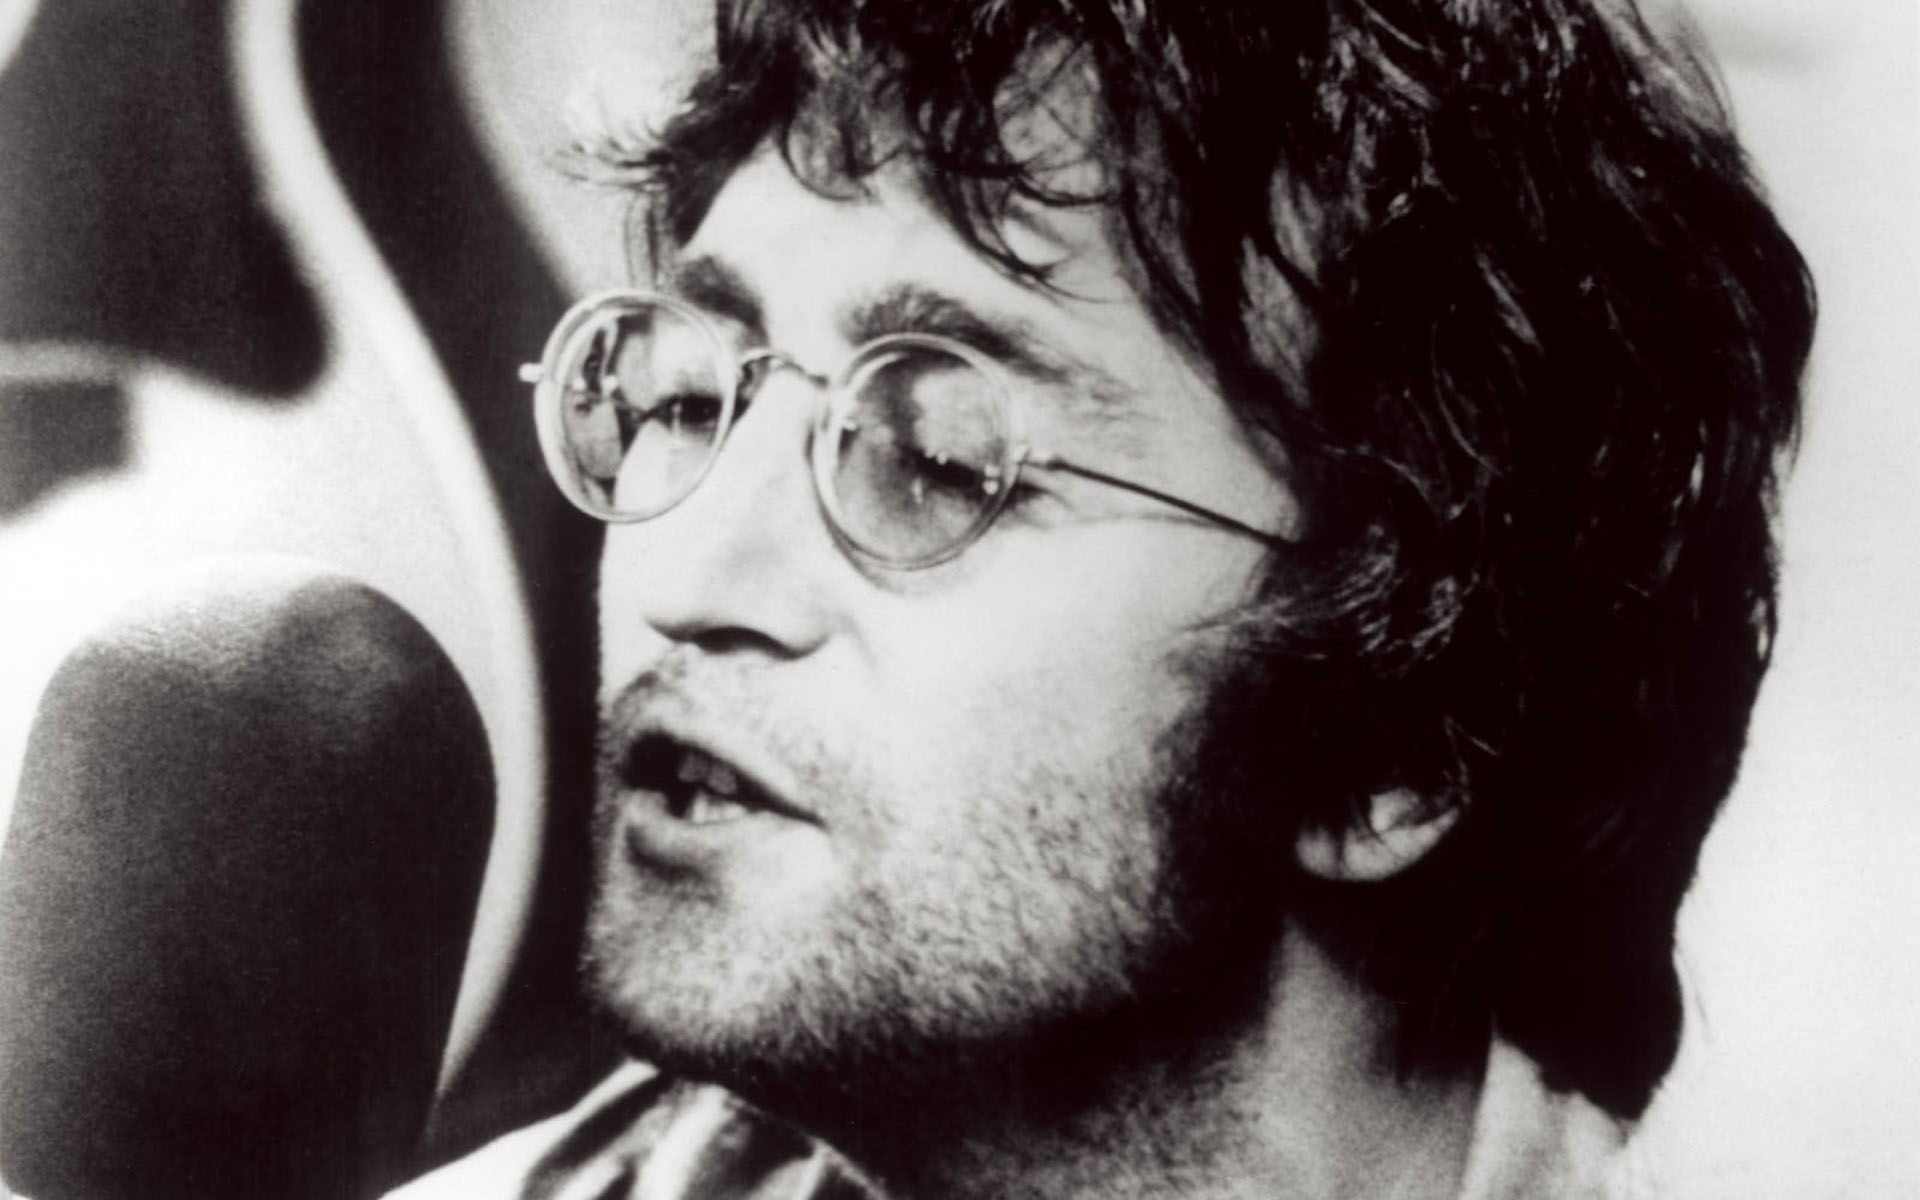 John Lennon Wallpapers, Wallpapers & Pictures .